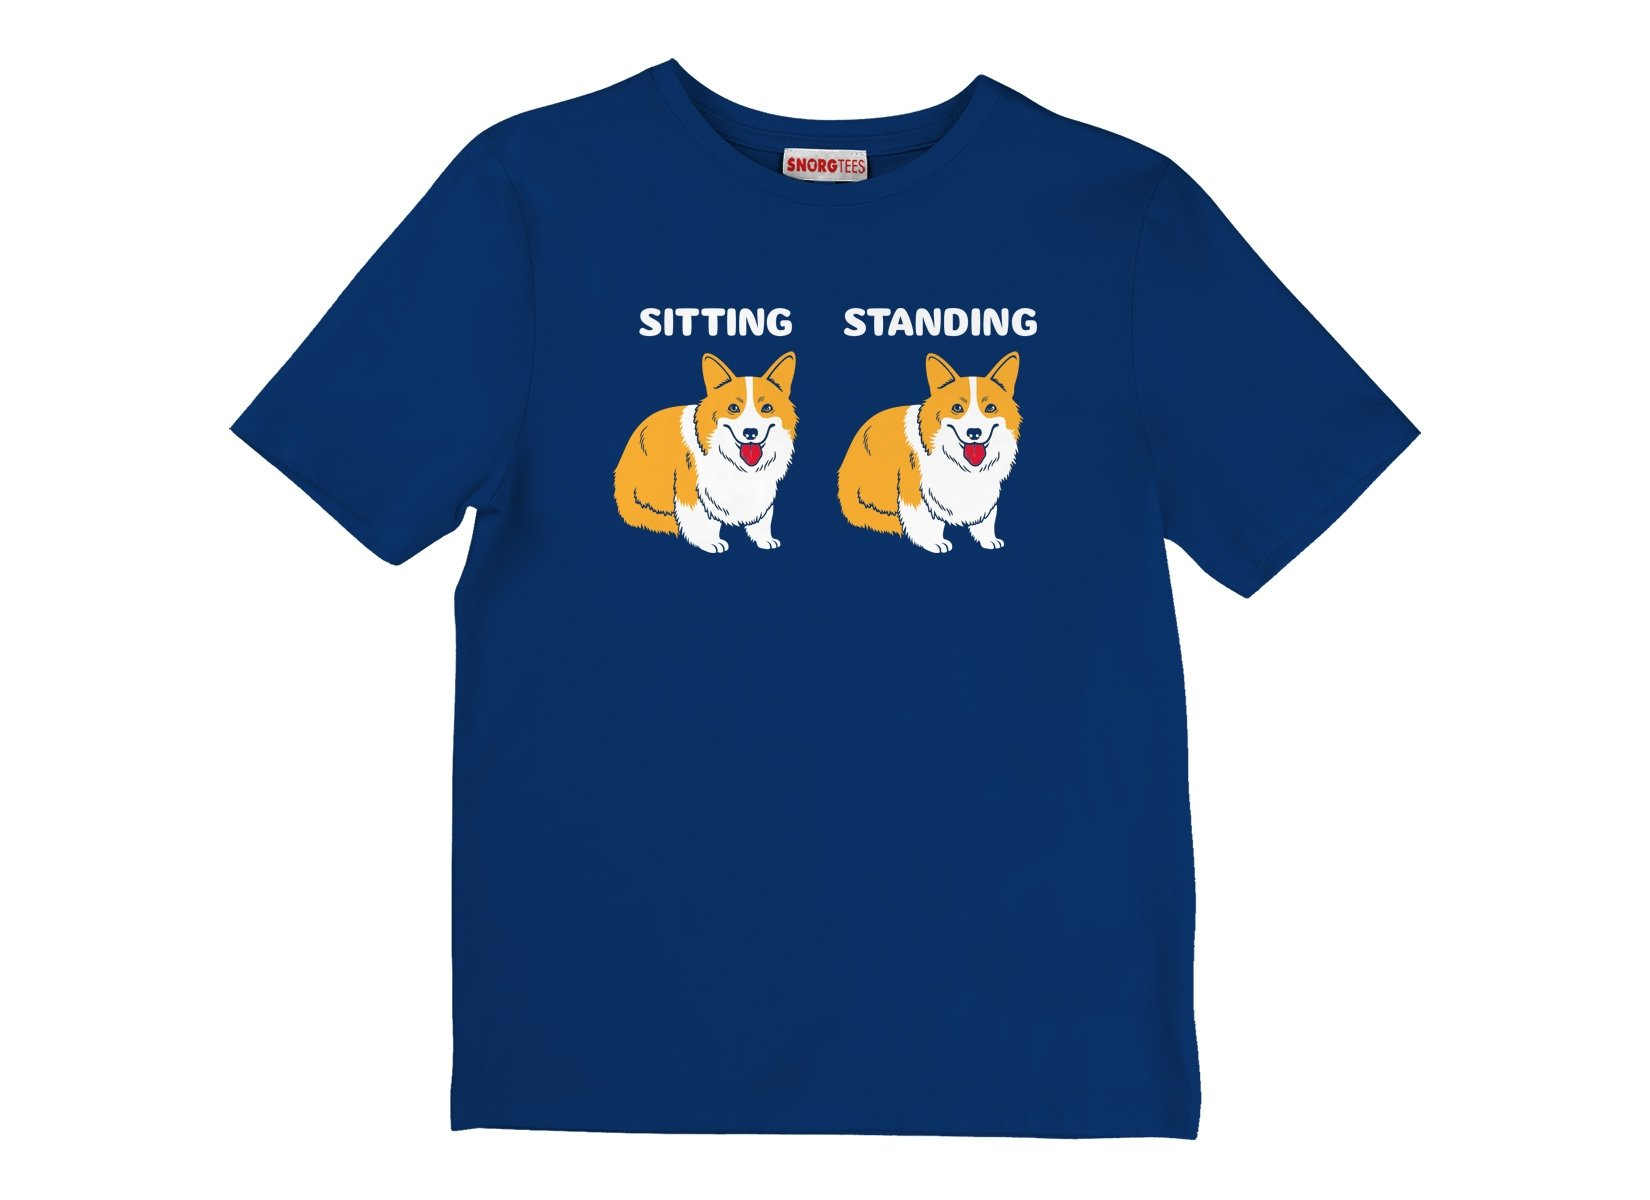 Corgi Sitting And Standing on Kids T-Shirt